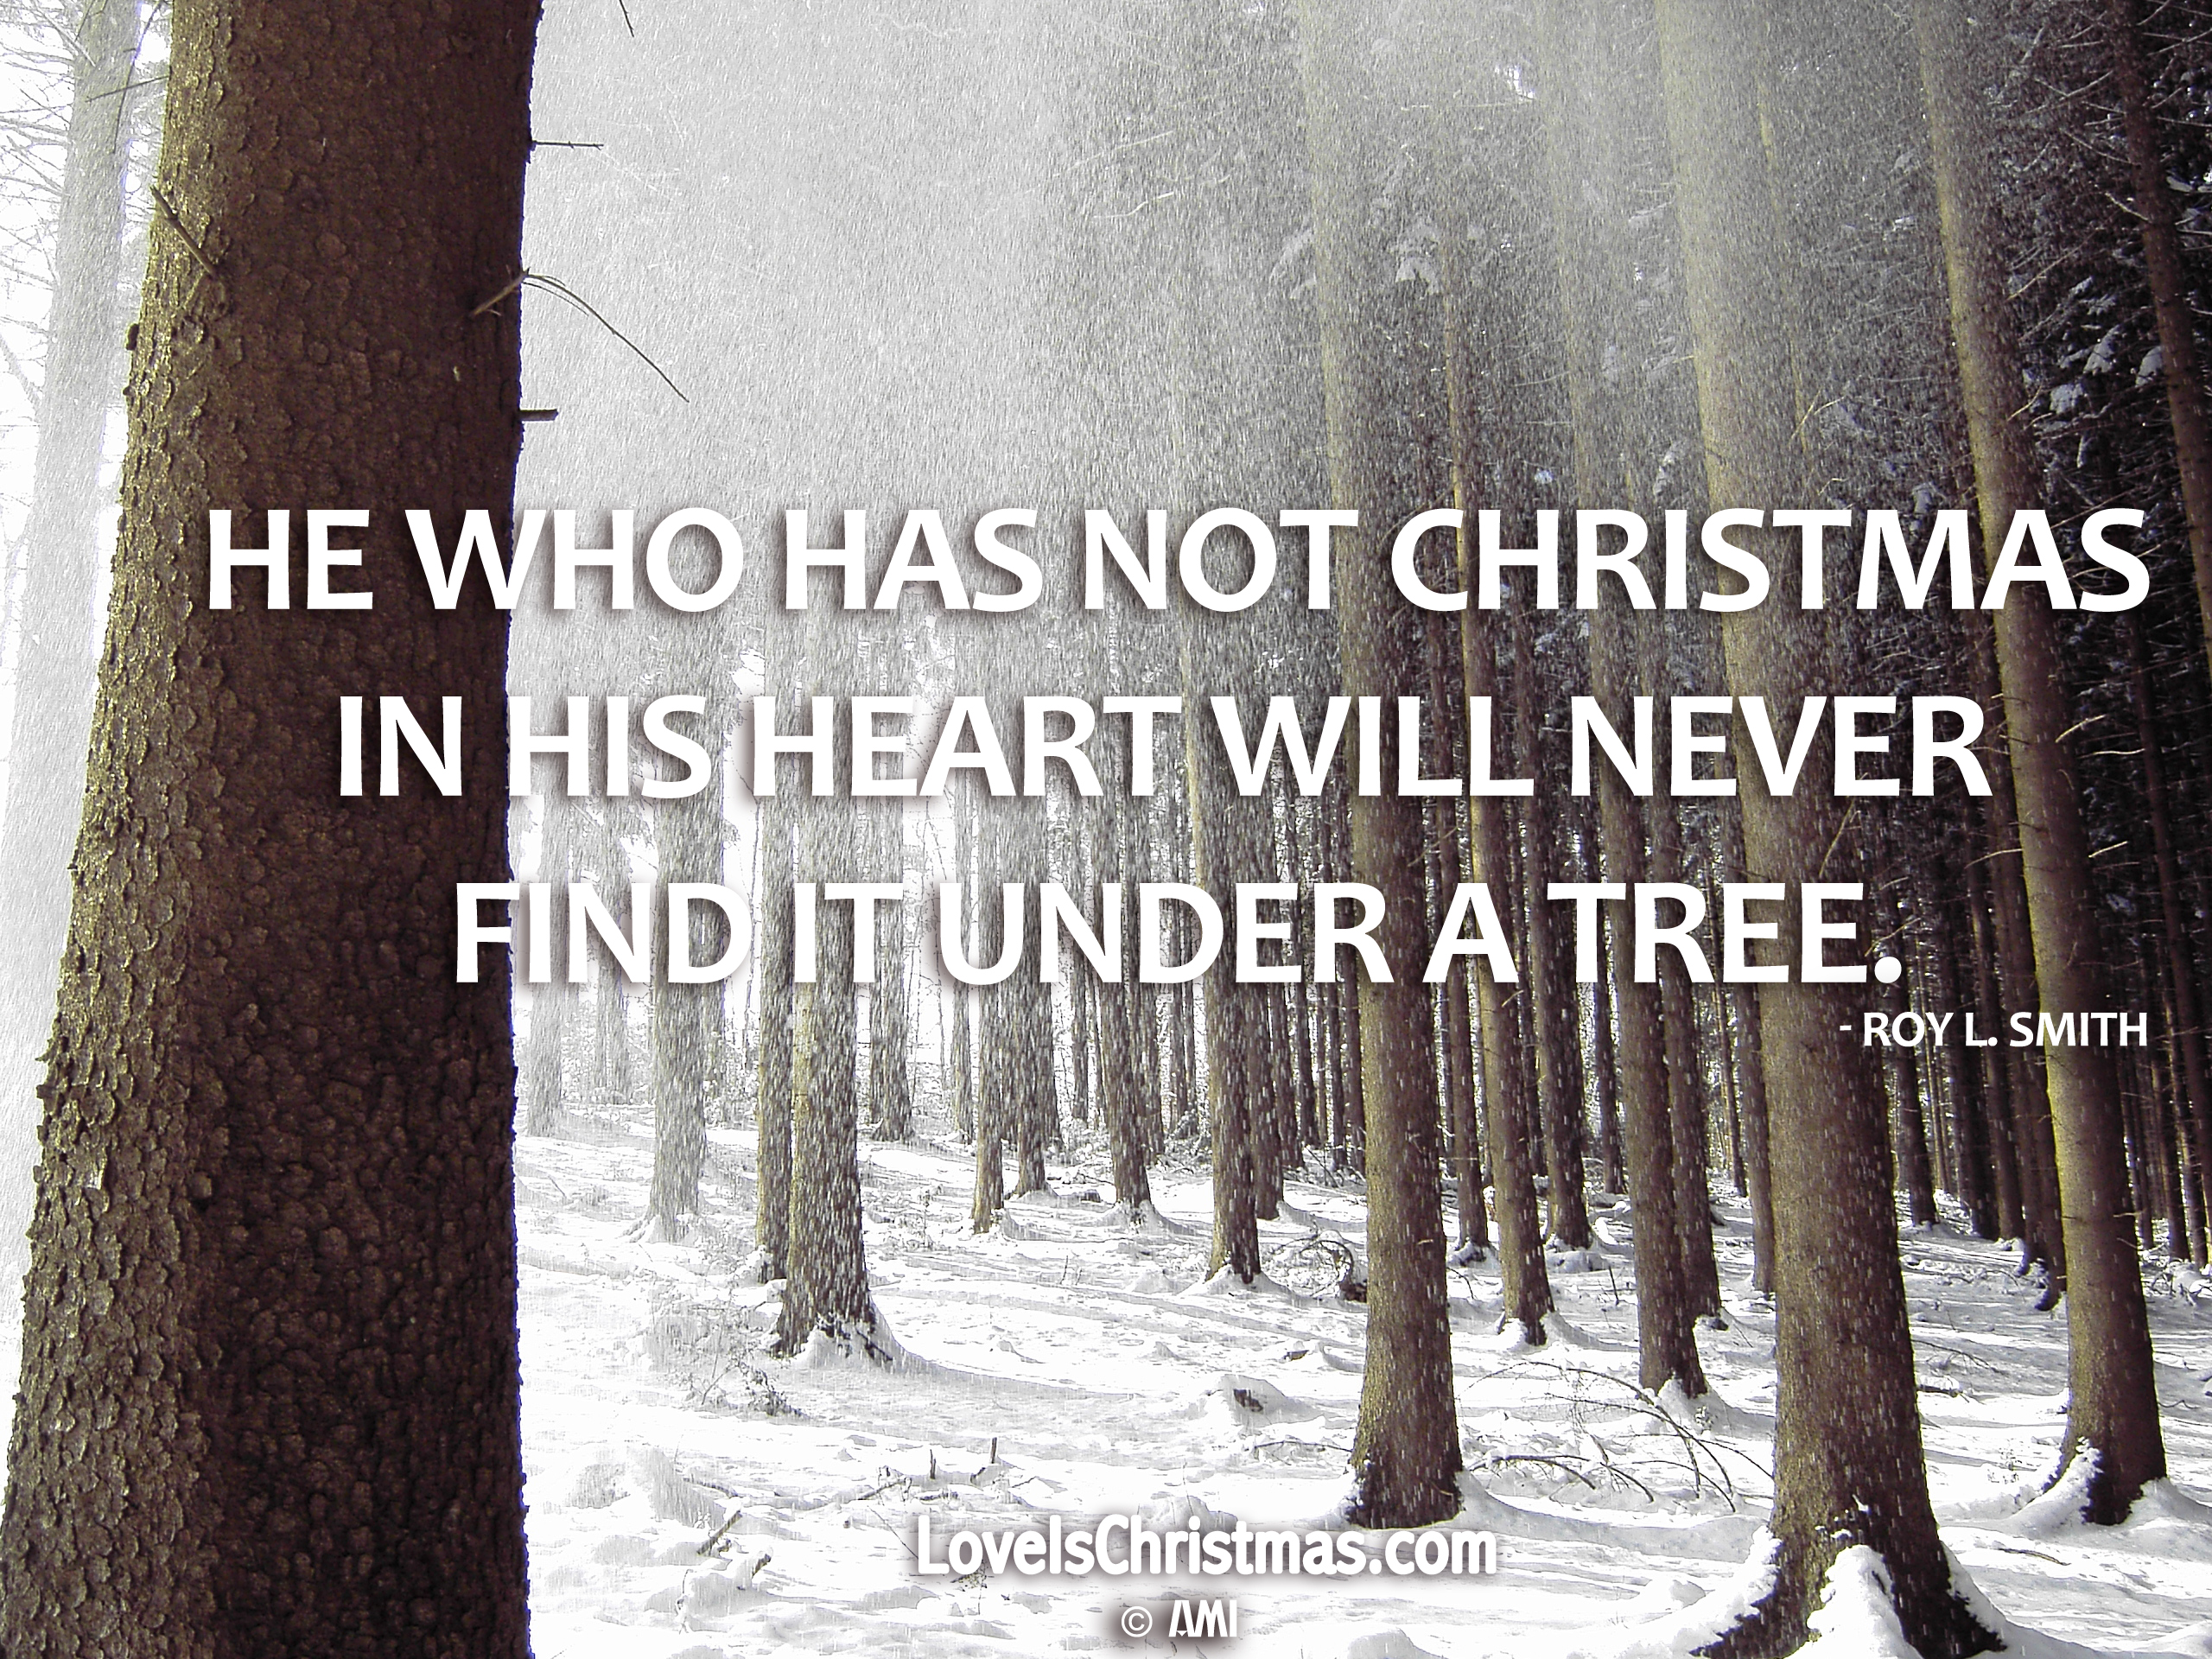 Sayings About Christmas Trees Pictures to Pin on Pinterest - PinsDaddy